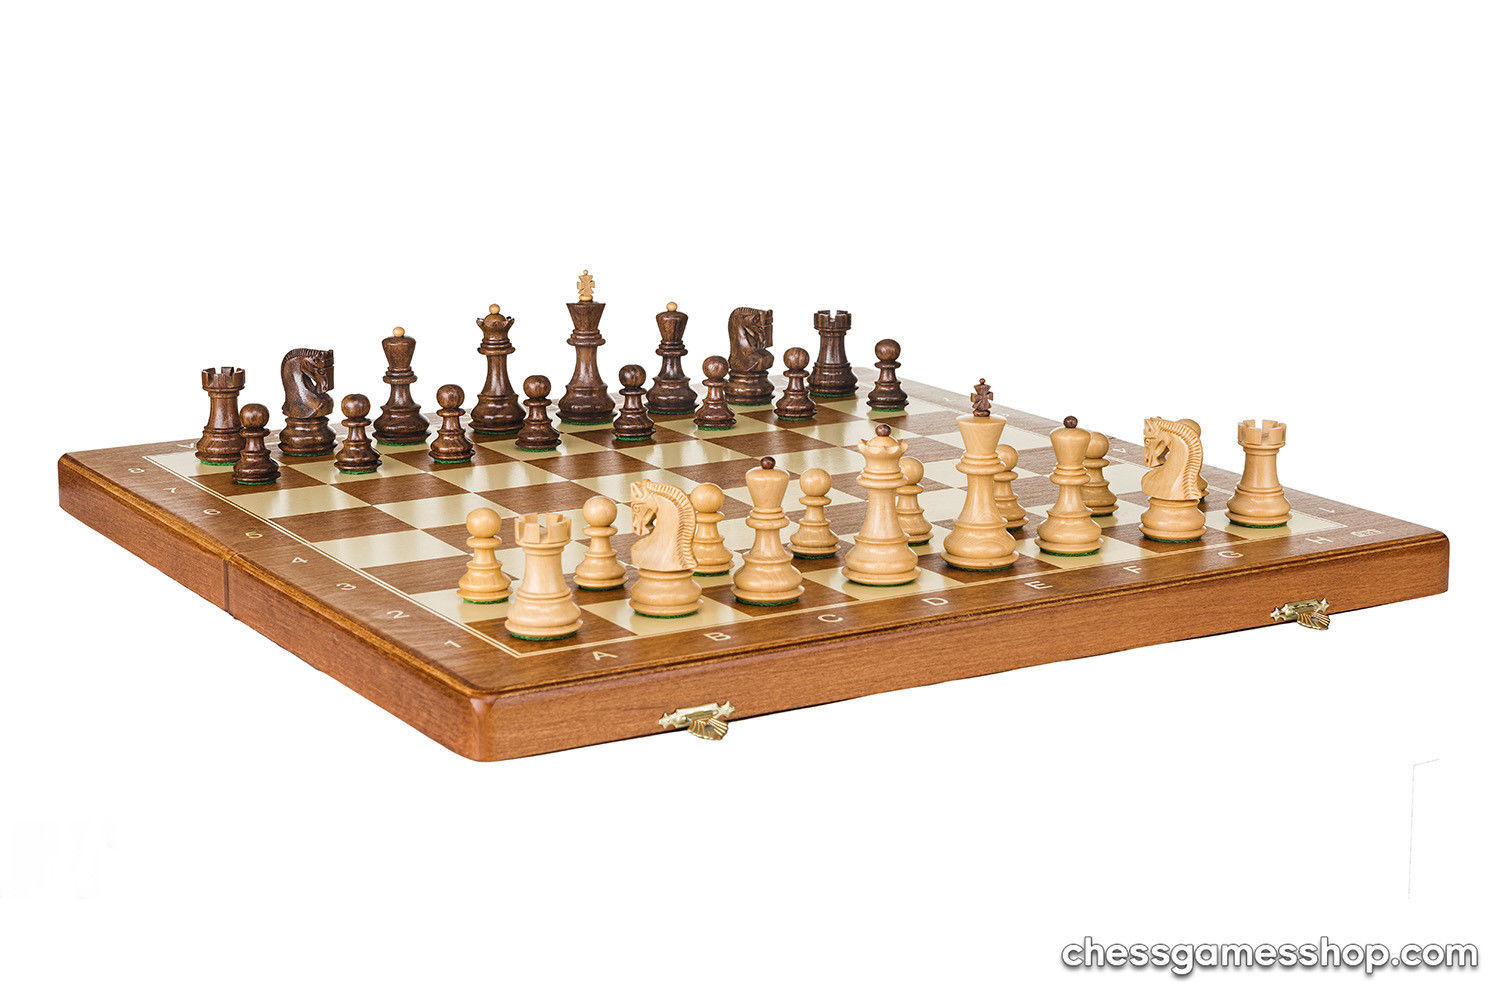 Chess Boards For Sale Amazon Chess Set Pewter For Sale Only 4 Left At 60